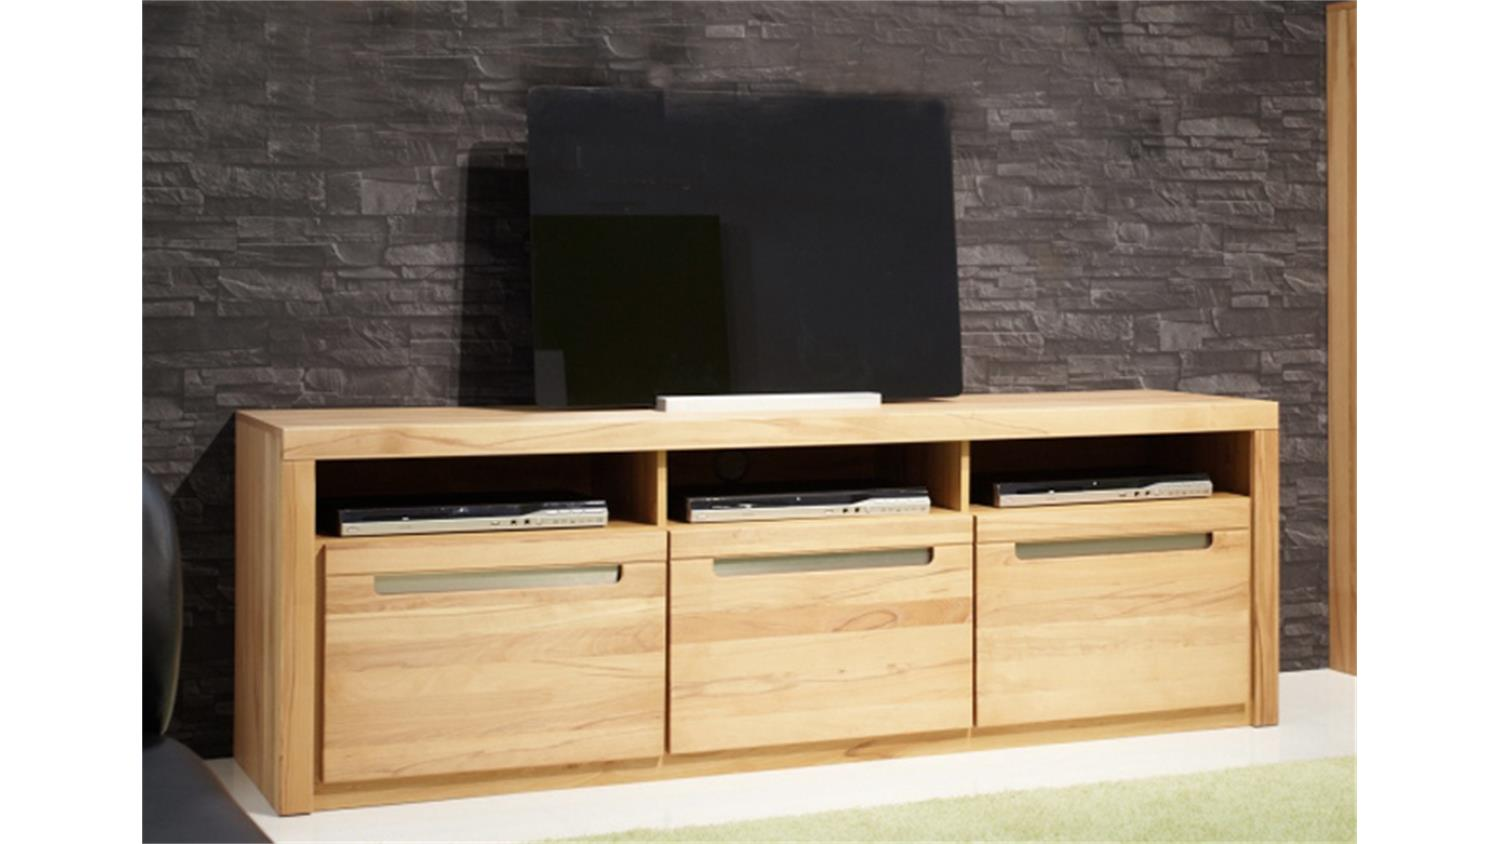 tv wagen fernsehtisch rollwagen tv board hifi unterschrank sideboard holz lago buche smash. Black Bedroom Furniture Sets. Home Design Ideas